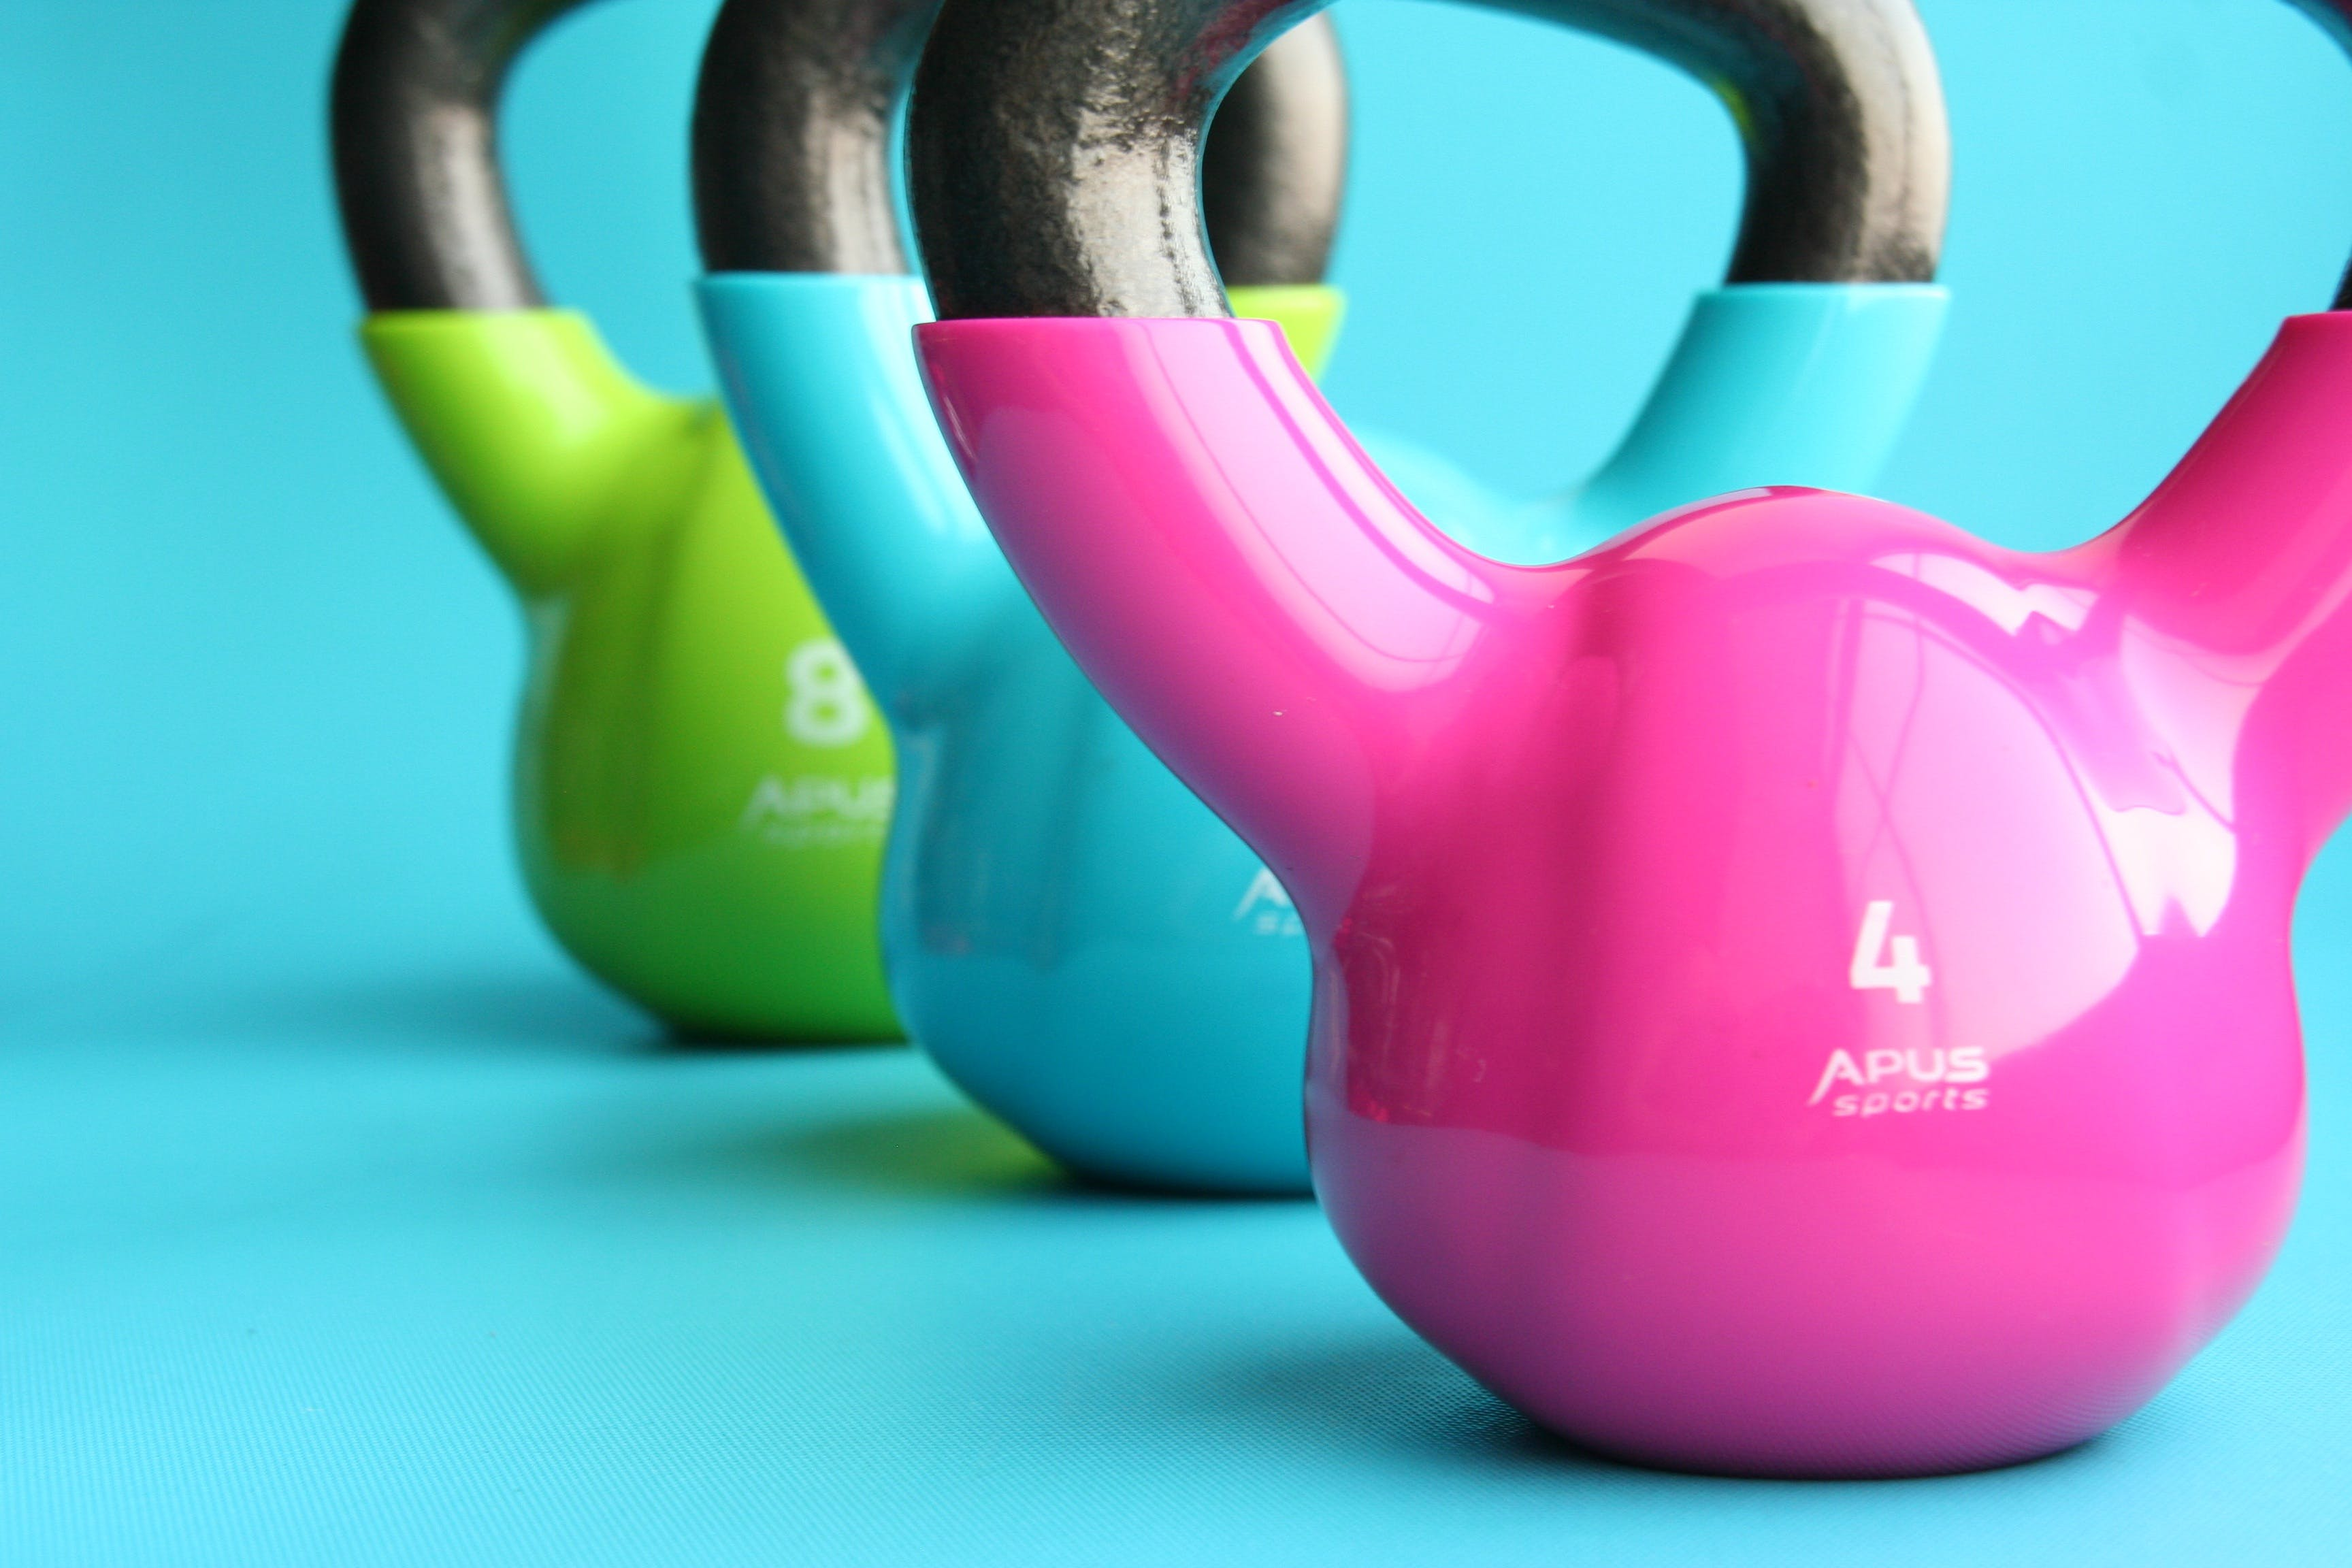 Green, Blue, and Pink Kettle Bells on Blue Surface